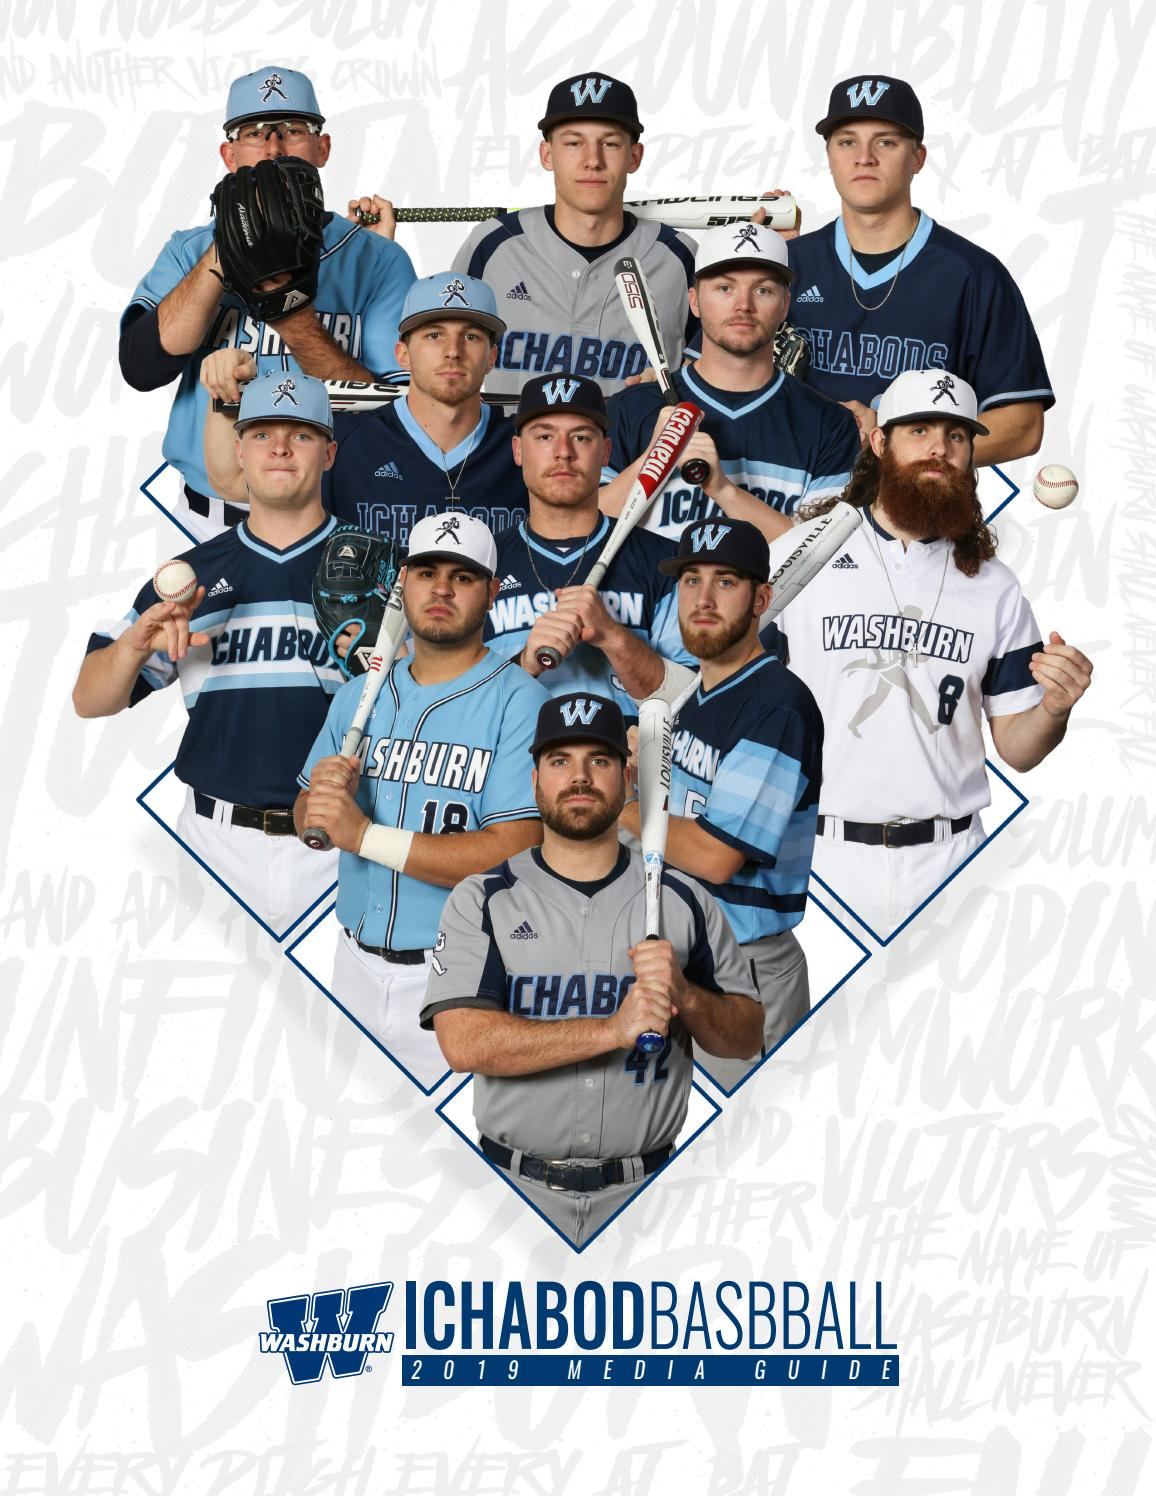 4c02d8f88 2019 Washburn Baseball Media Guide by Washburn Athletics - issuu